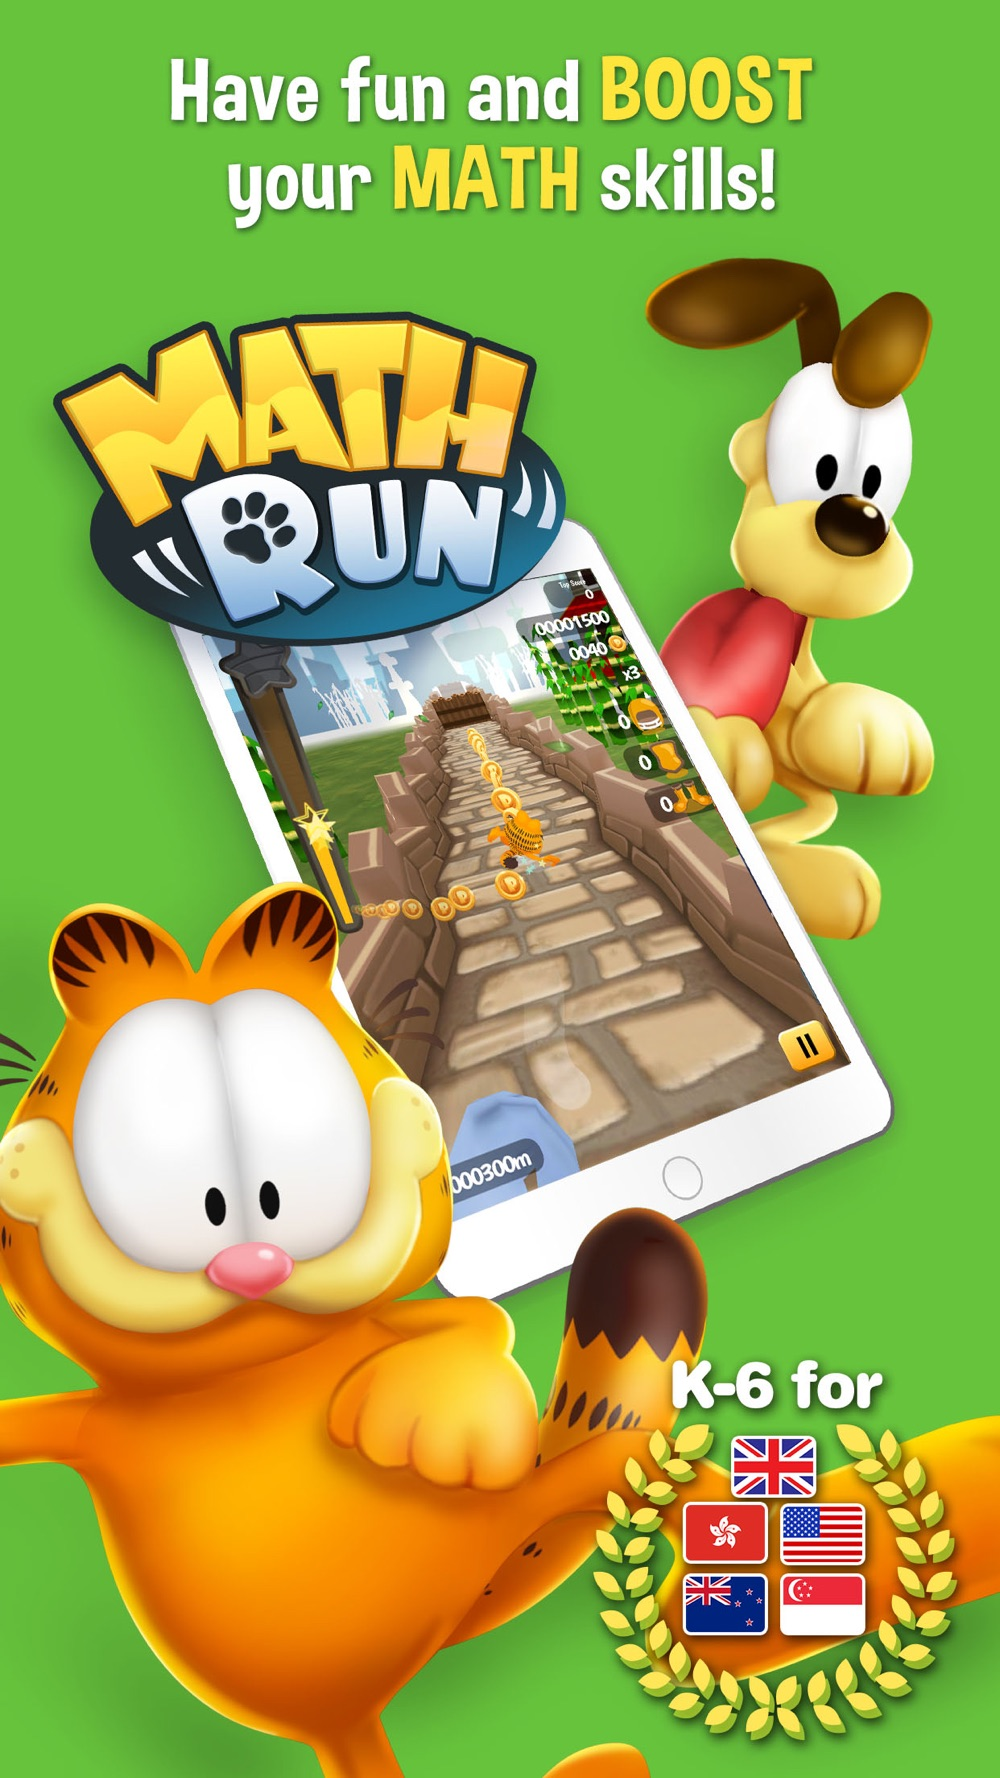 Garfield Math Run cheat codes